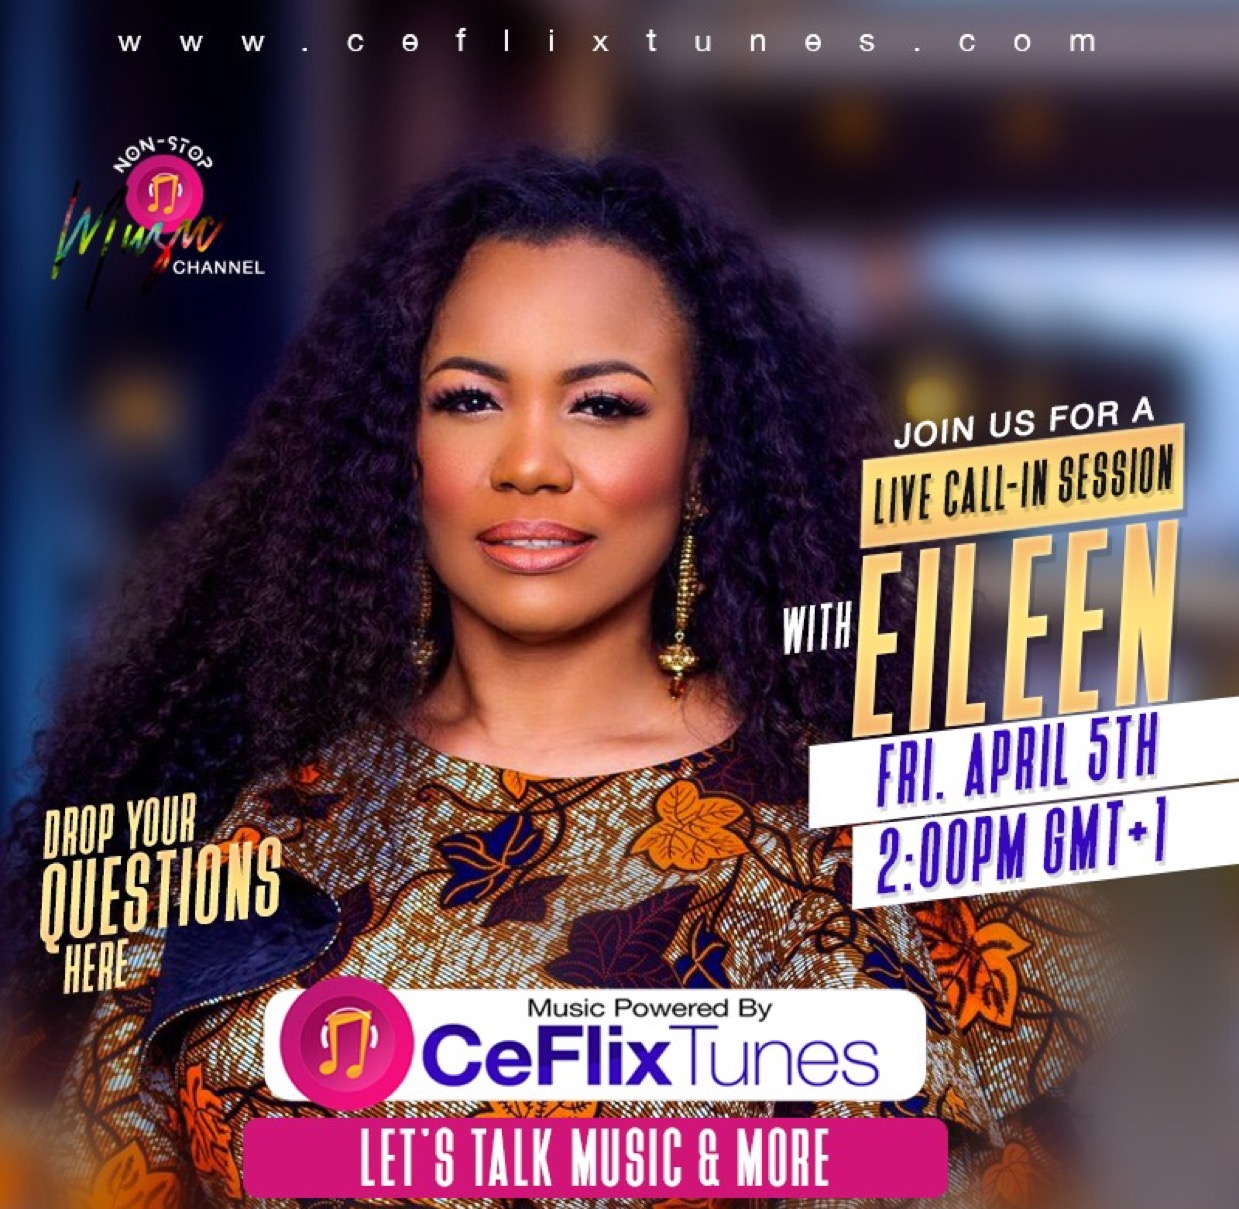 Tune in to CeFlix Tunes